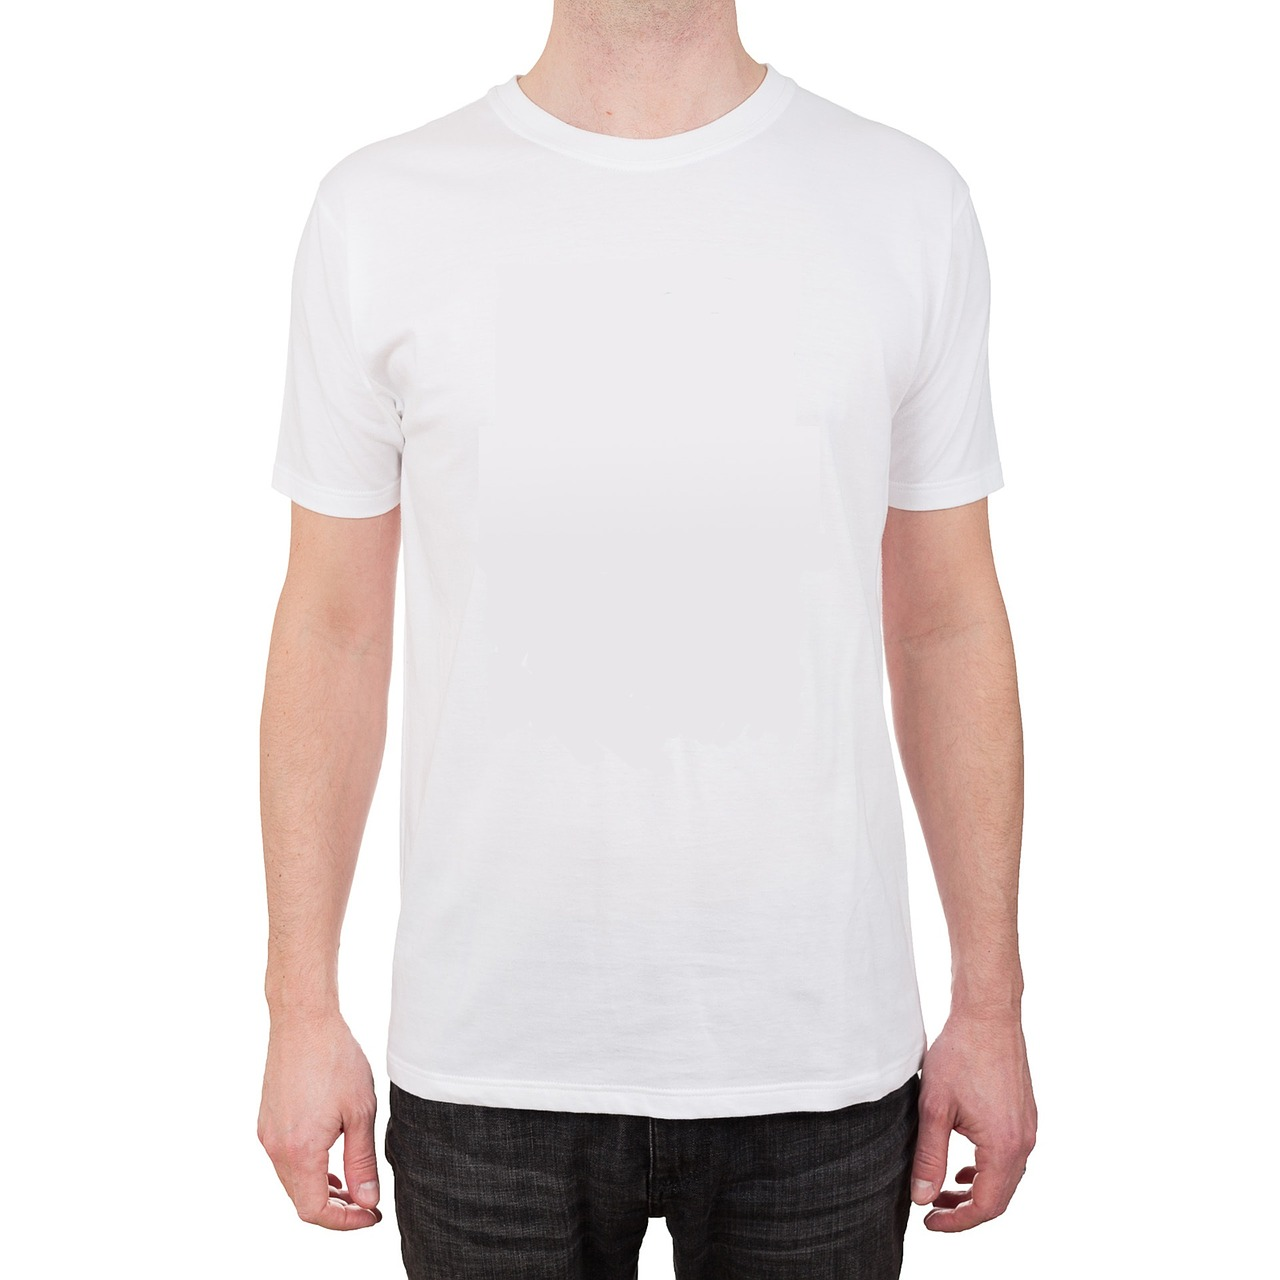 Why You Need A Premium Quality High Visibility T-Shirt